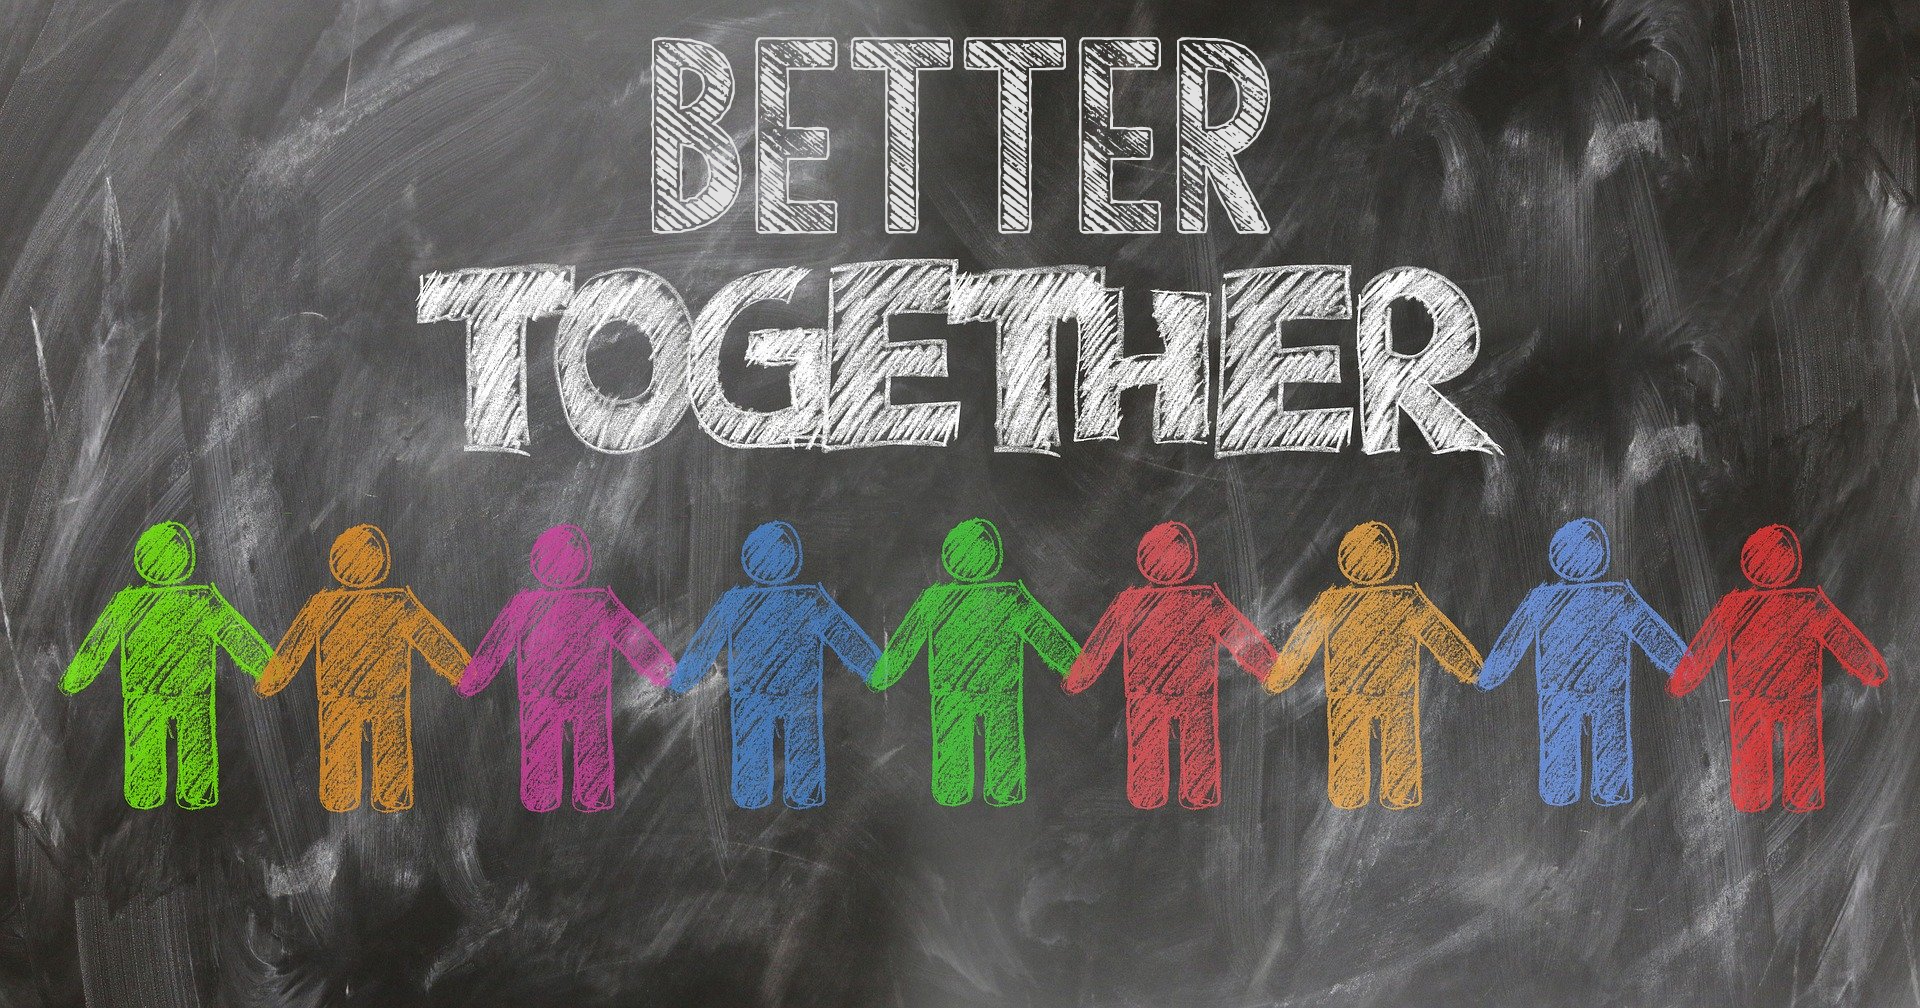 Better together - How being part of an association in times of crisis pays dividends